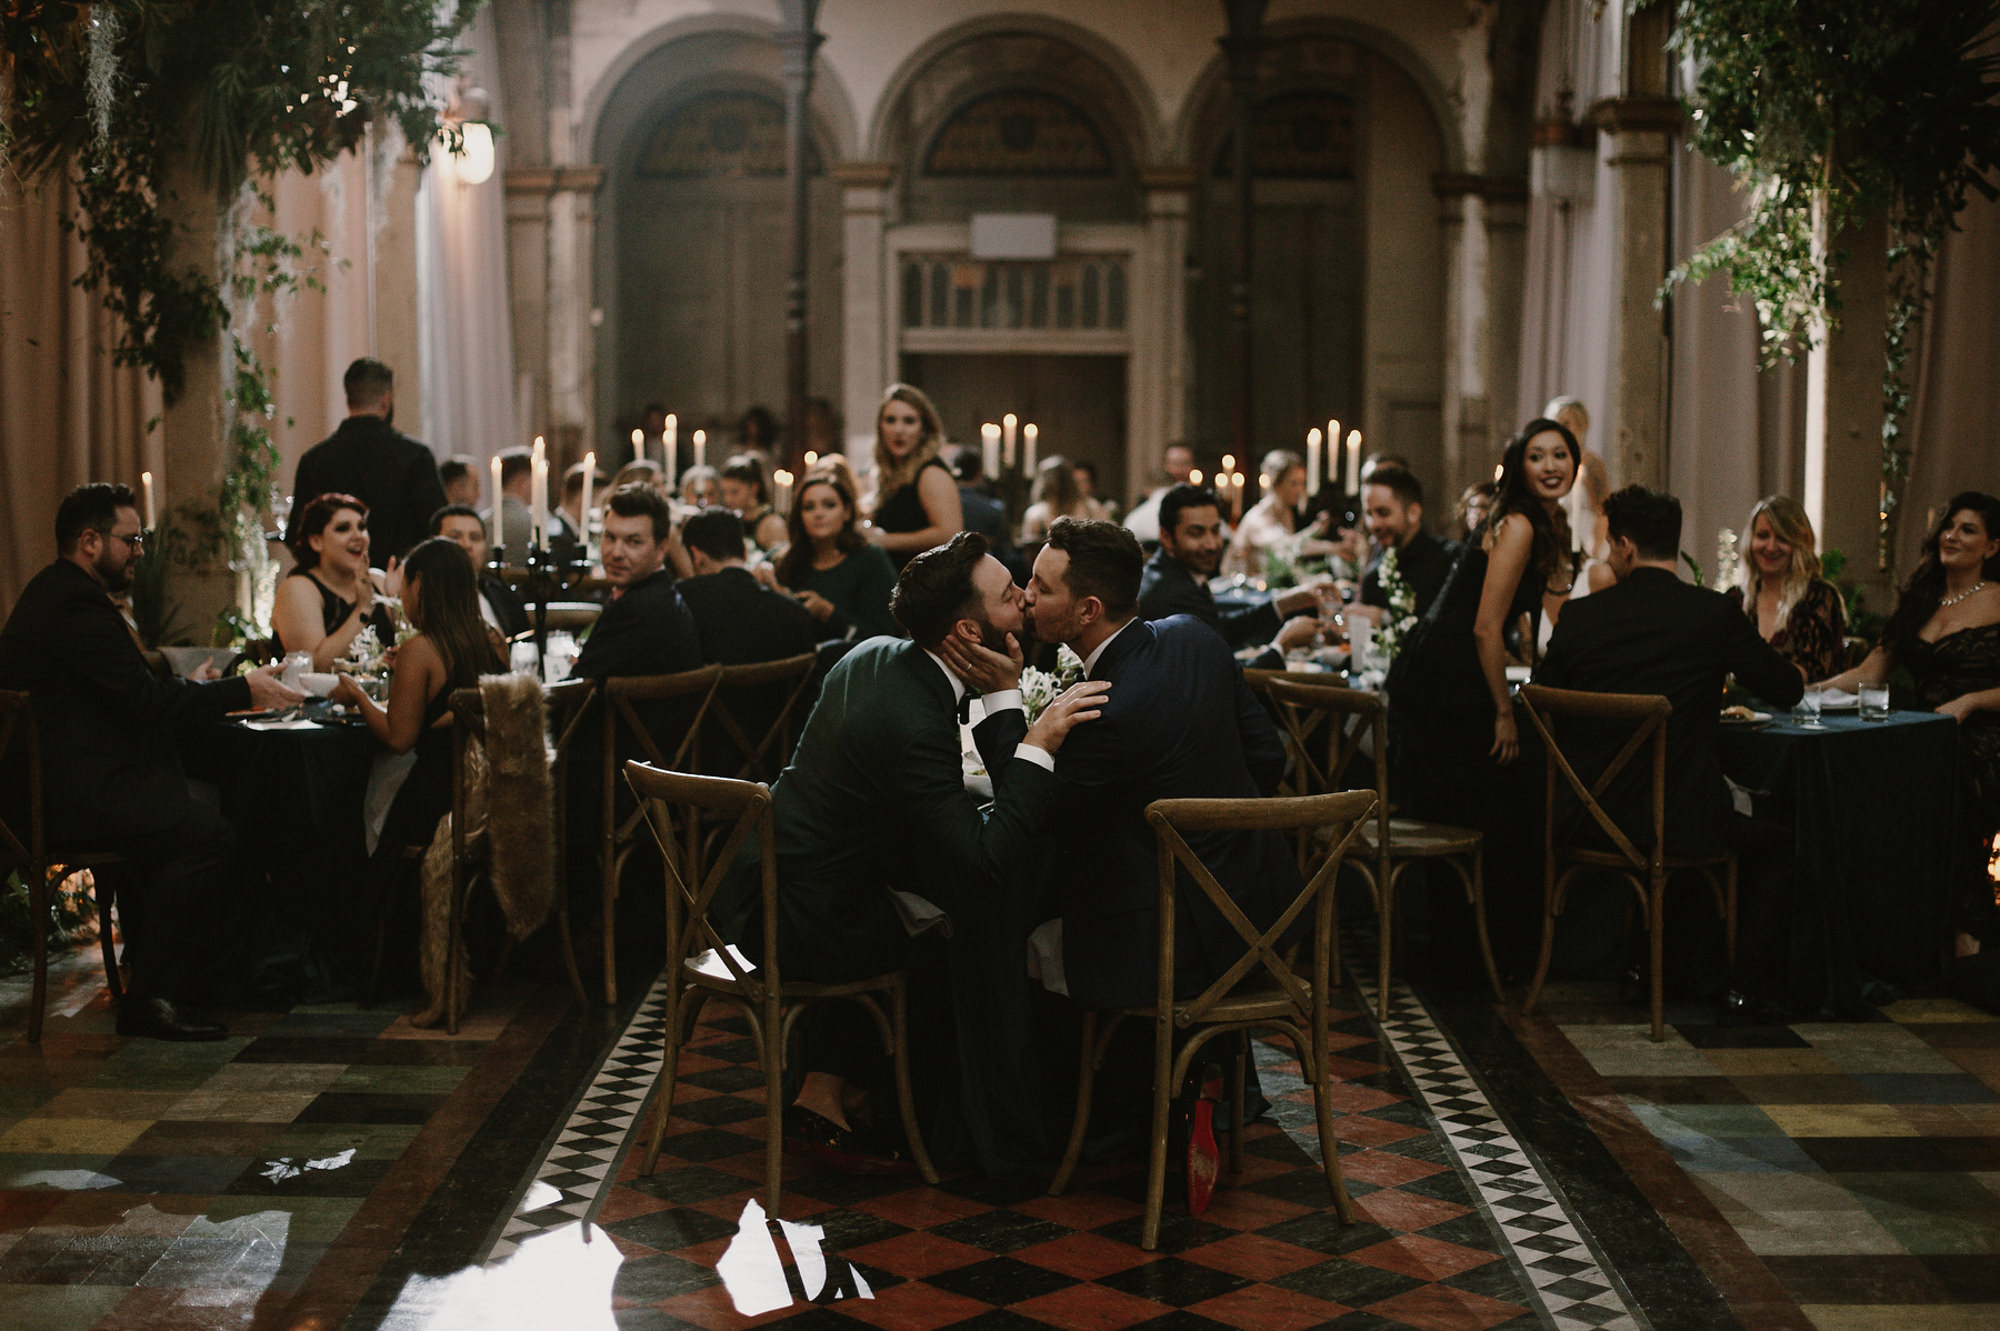 Grooms kiss one another at elegant tiled venue - photo by Kristen Marie Parker